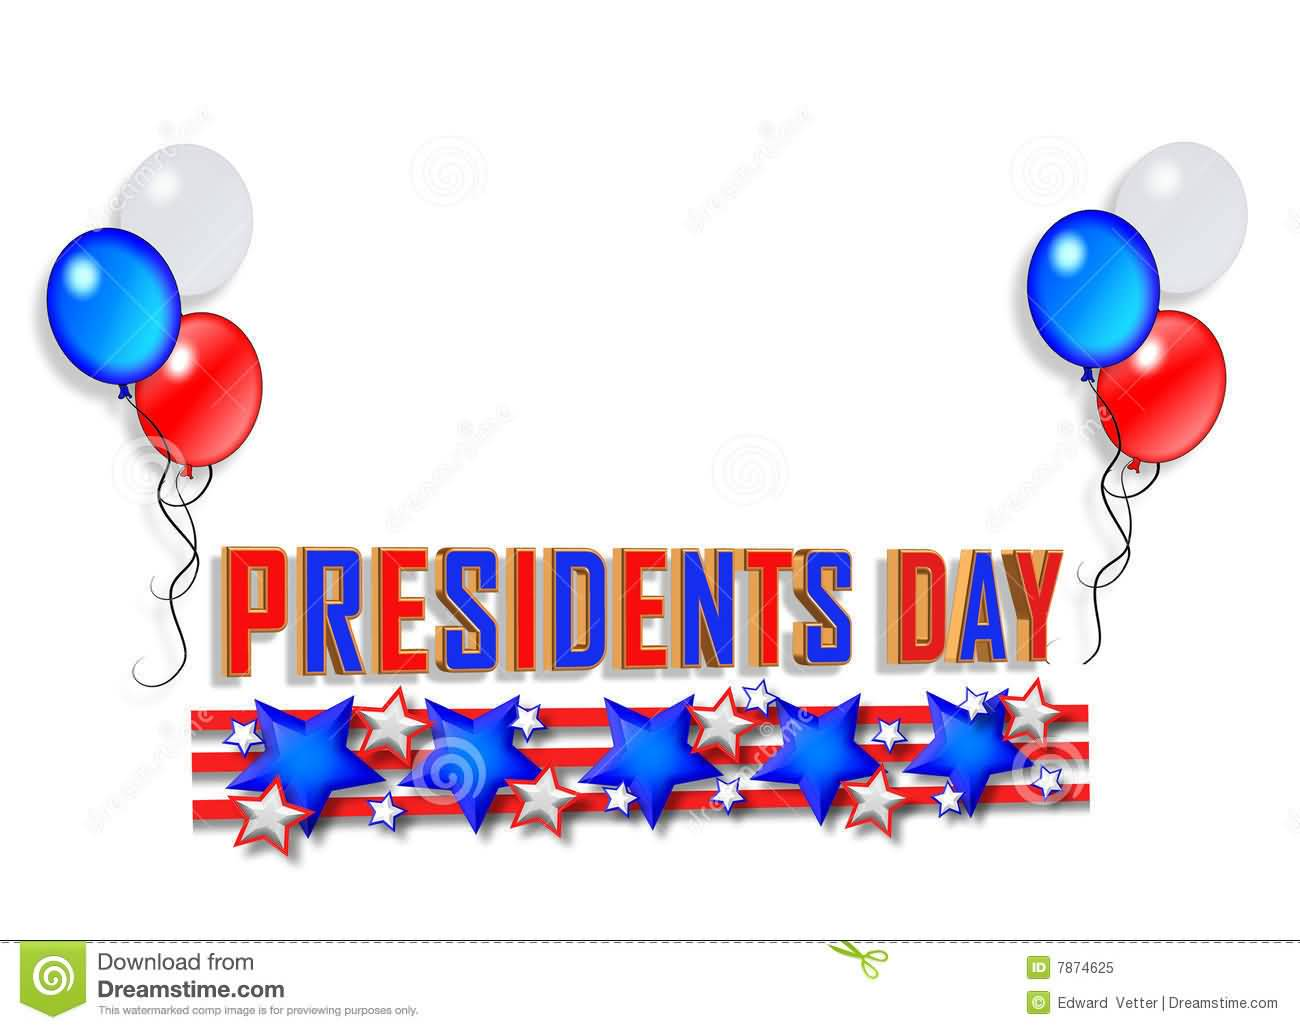 22 President's Day Images